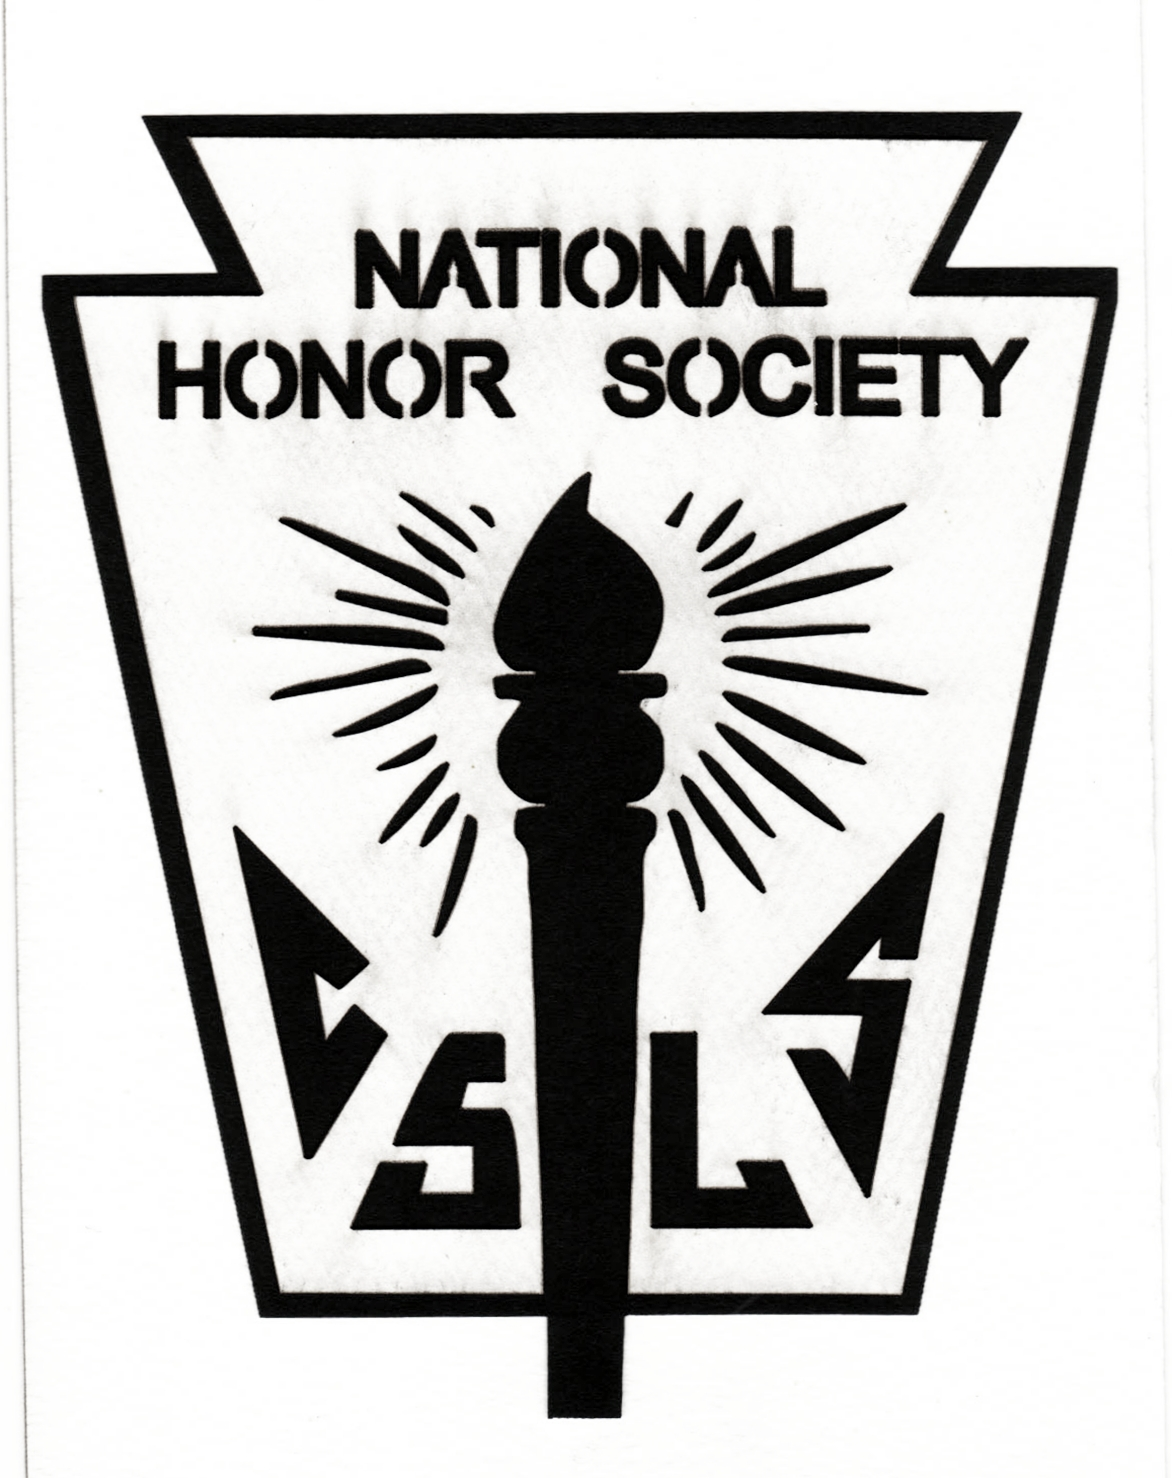 I got a application for the national honors society but does it...?